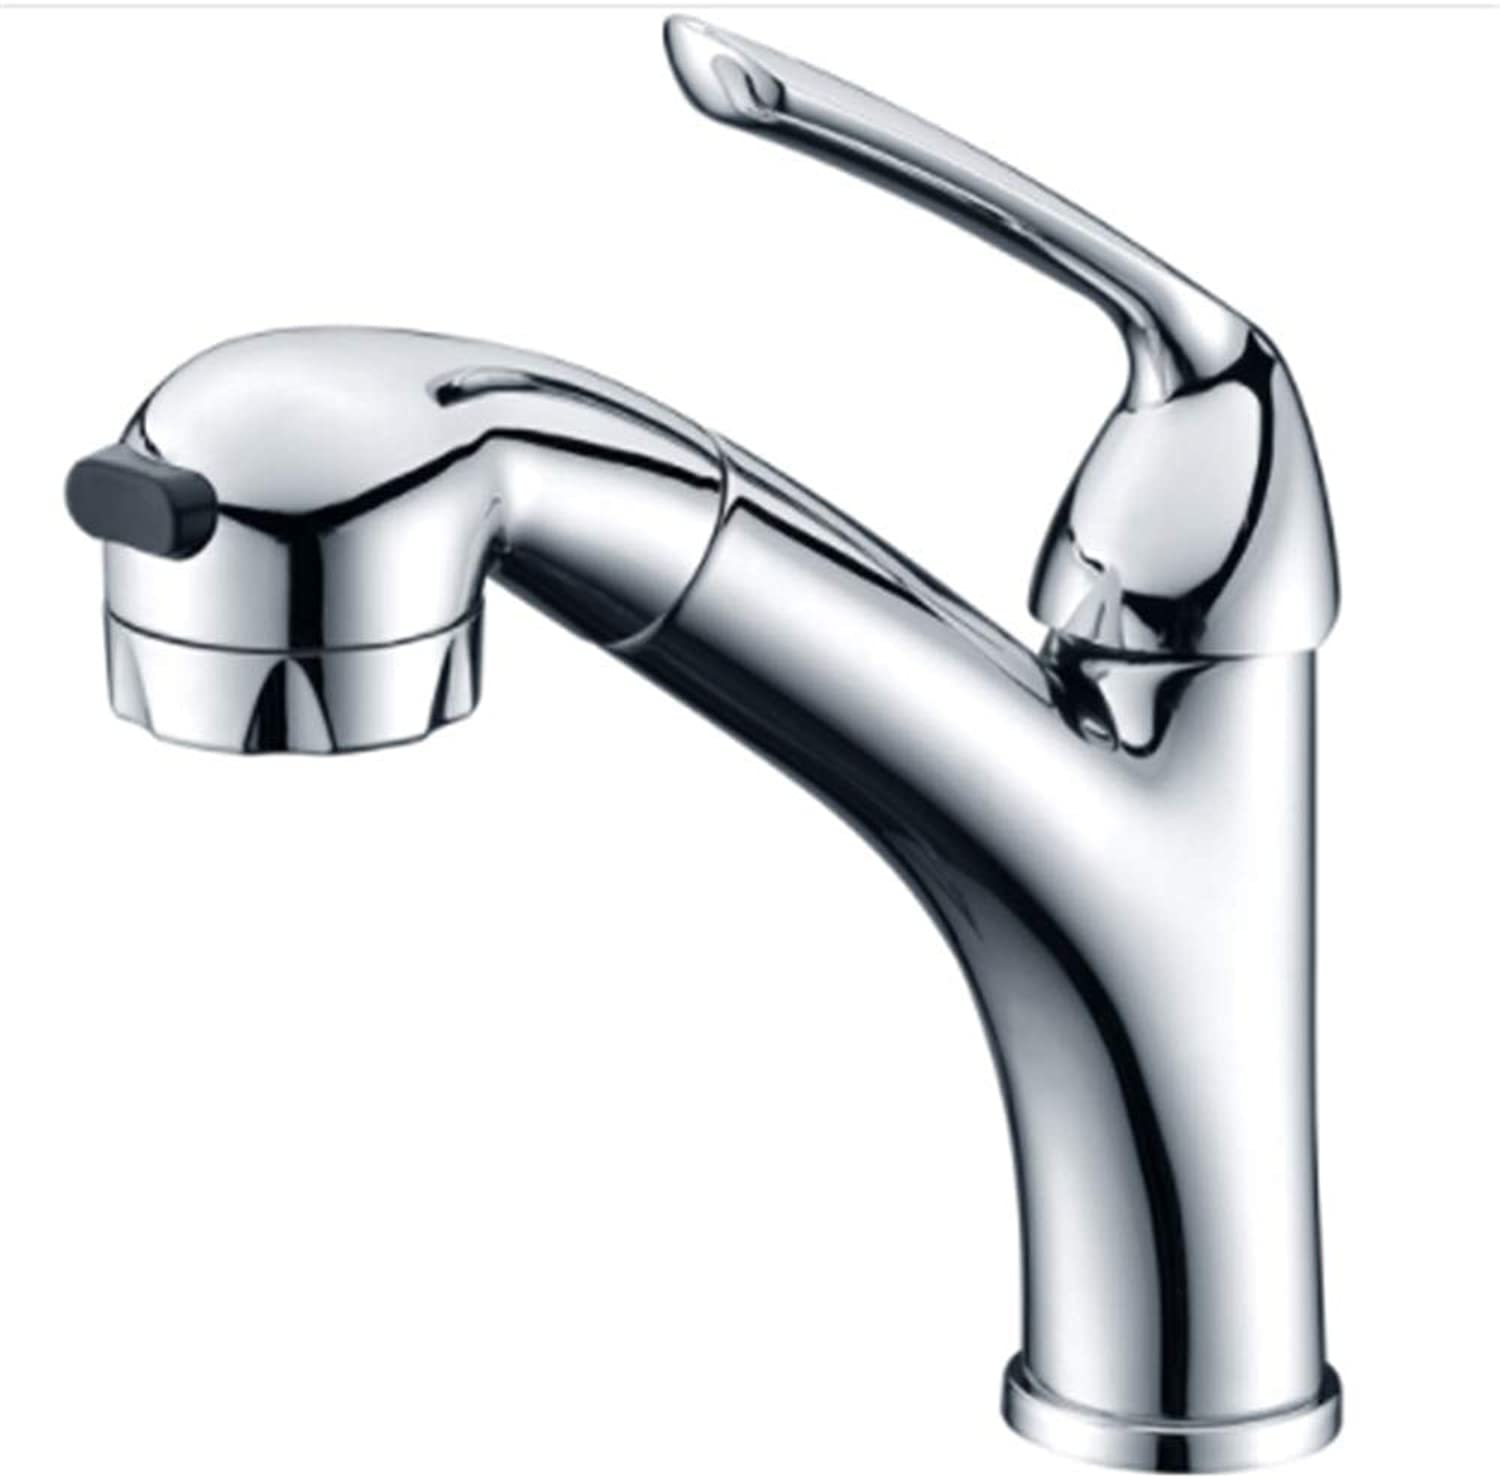 Kitchen Faucet Tapstainless Steelkitchen Faucet Prowashbasin Faucet, All Copper Hot and Cold Water Nozzle, Hand Basin, Draw Water Faucet.